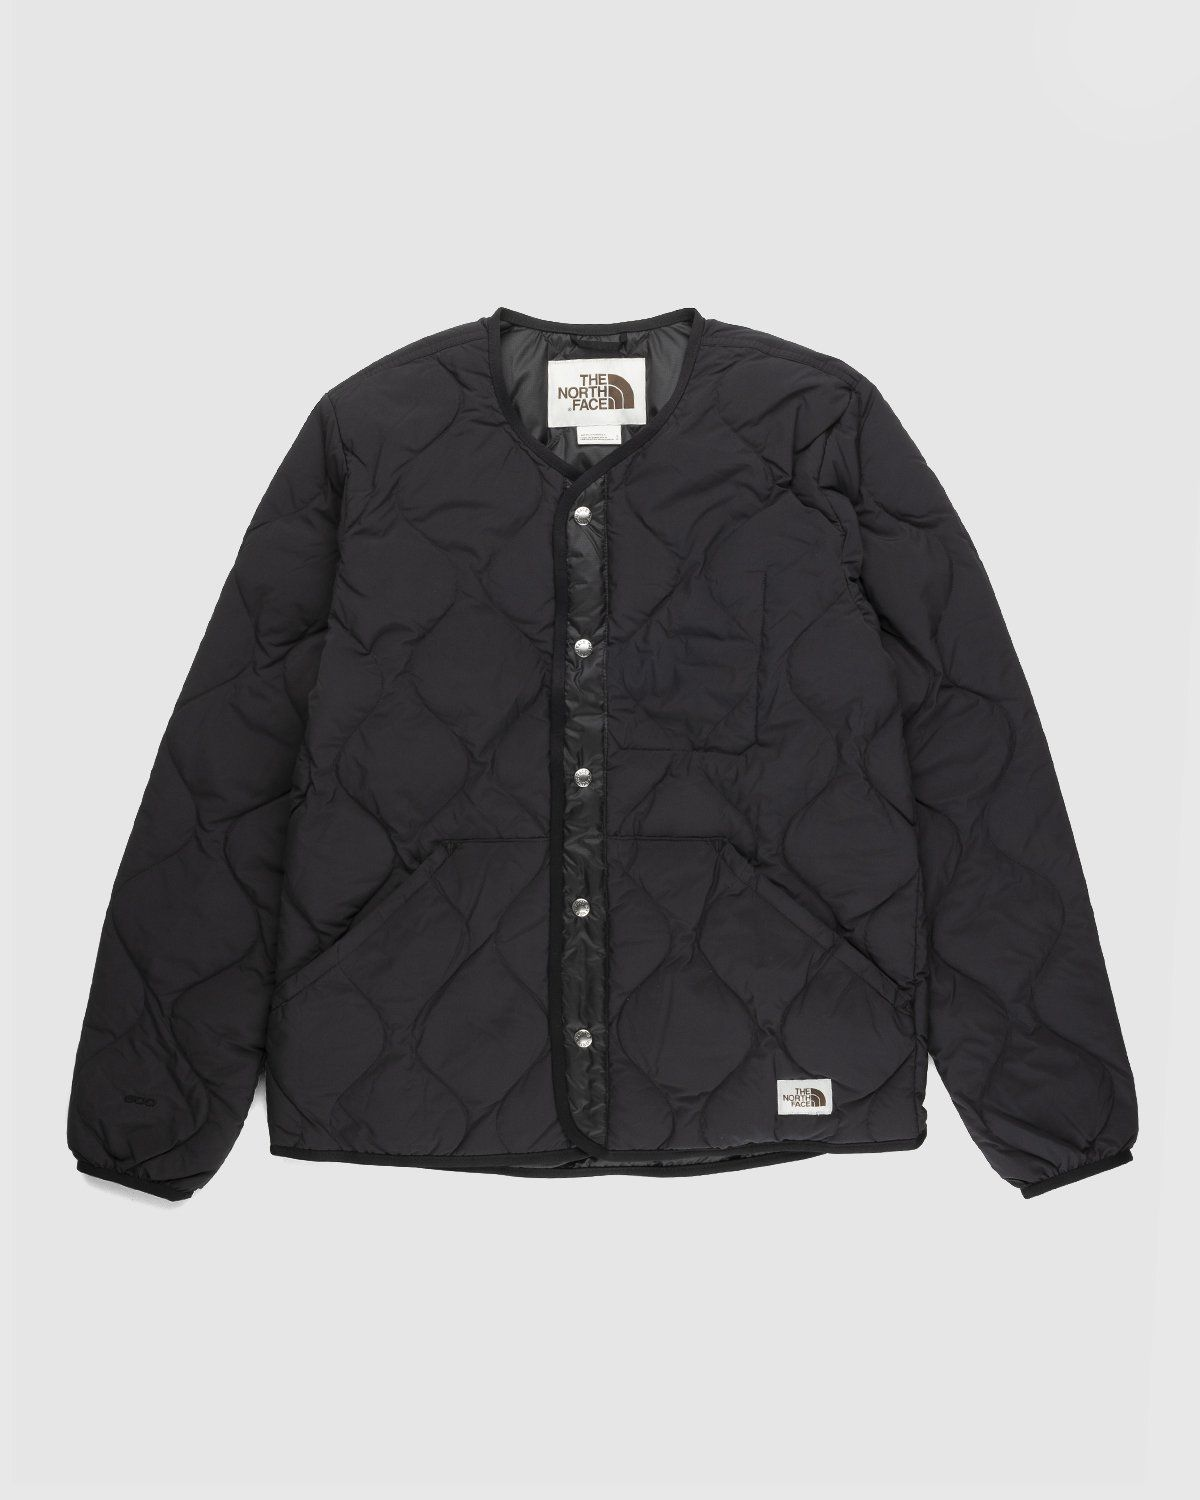 The North Face – M66 Down Jacket Black - Image 1